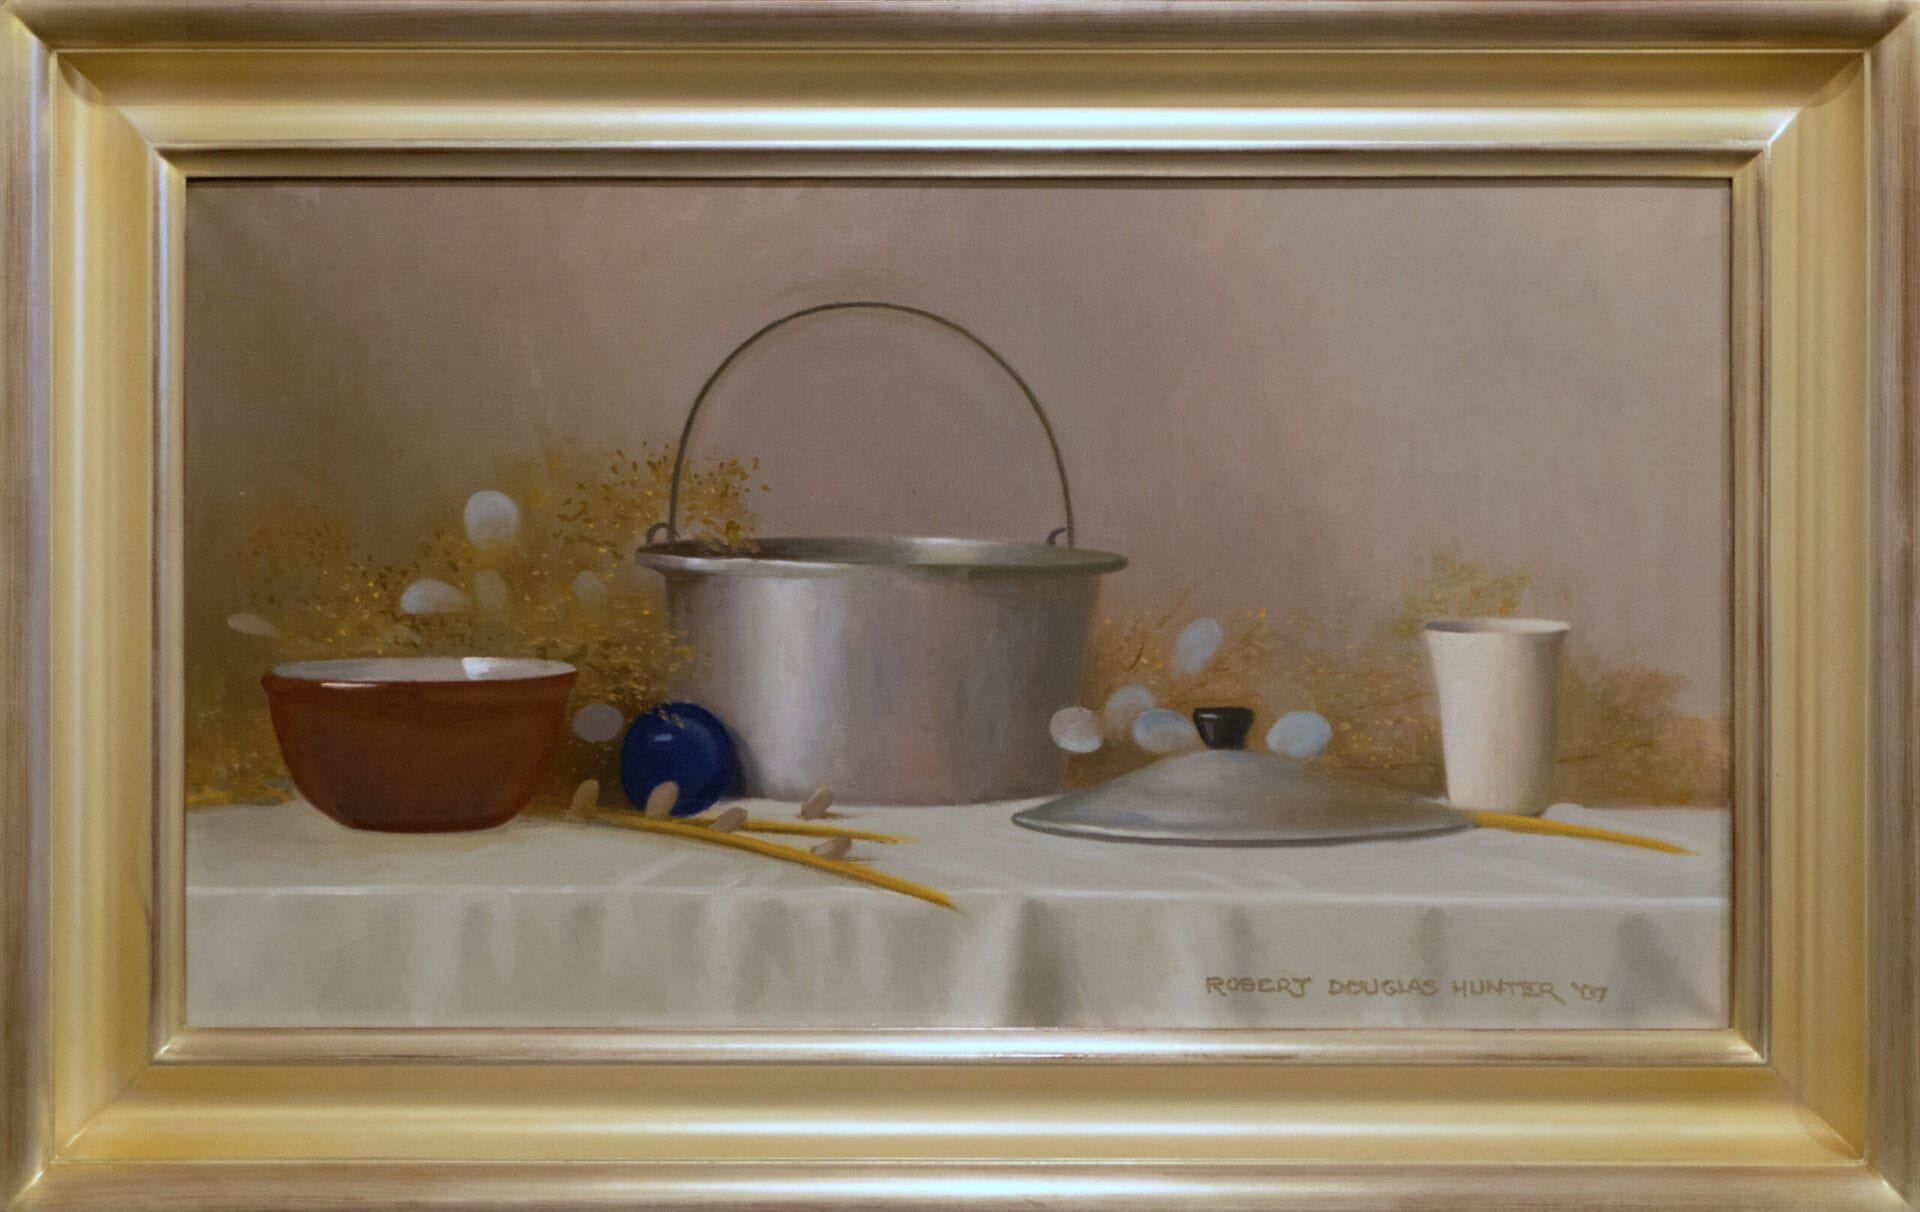 Still Life with Aluminum Cooking Kettle | Robert Douglas Hunter | Oil on Canvas | 20 x 36""